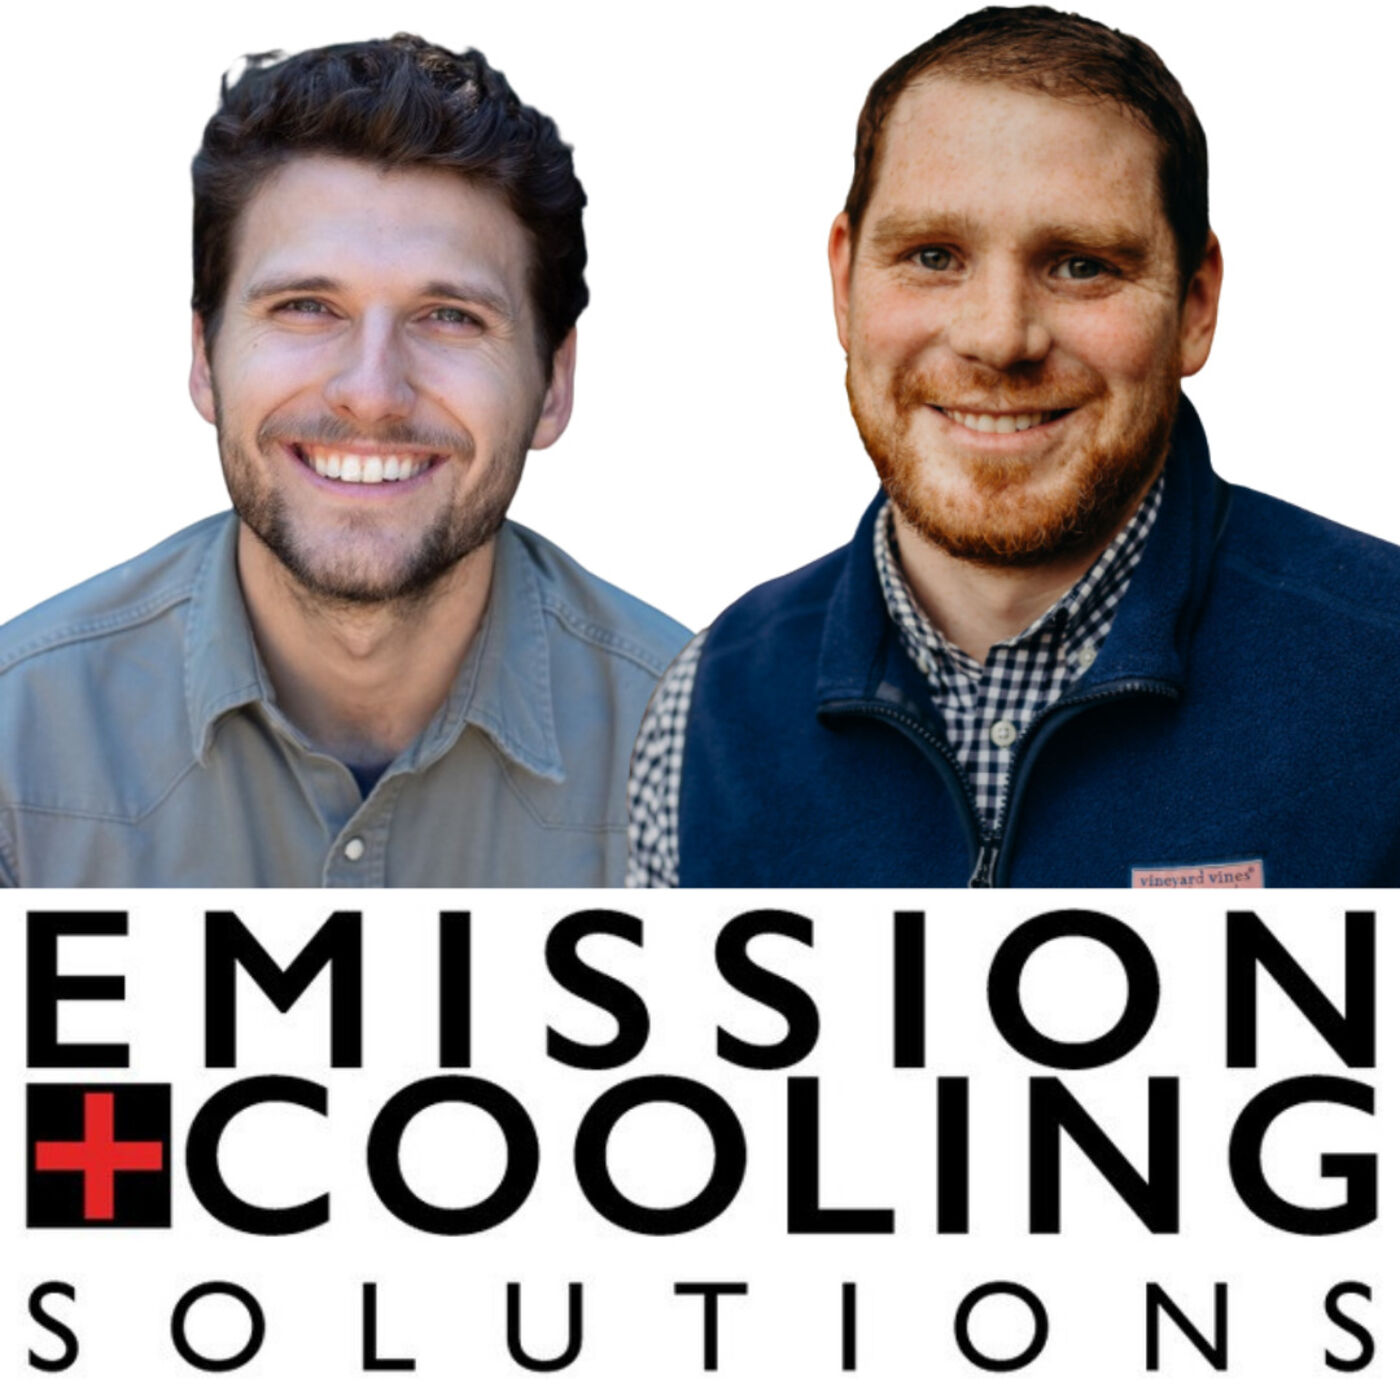 Your Fleet + Their Emissions and Cooling Expertise = A Winning Advantage